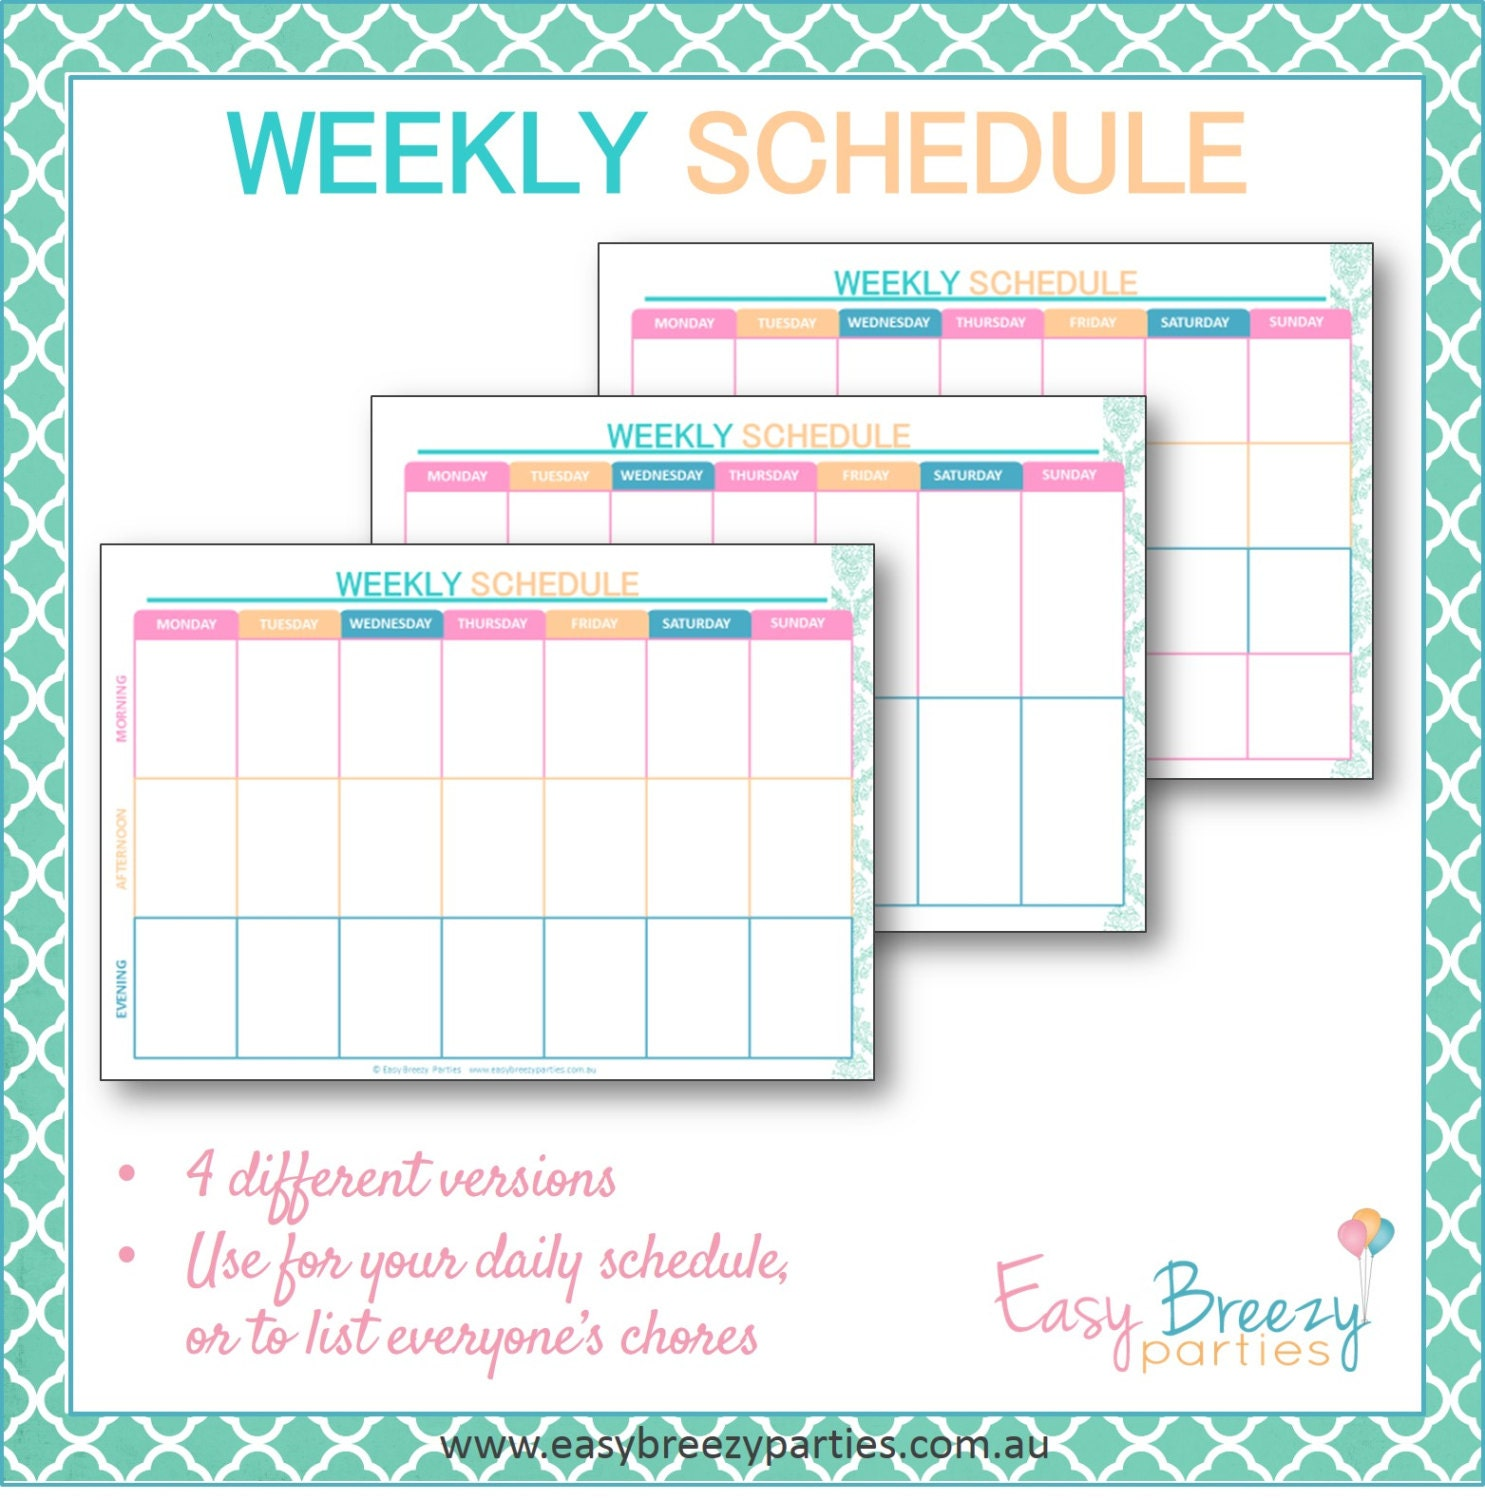 timetable weekly schedule printable weekly timetable planner family chore chart instant digital